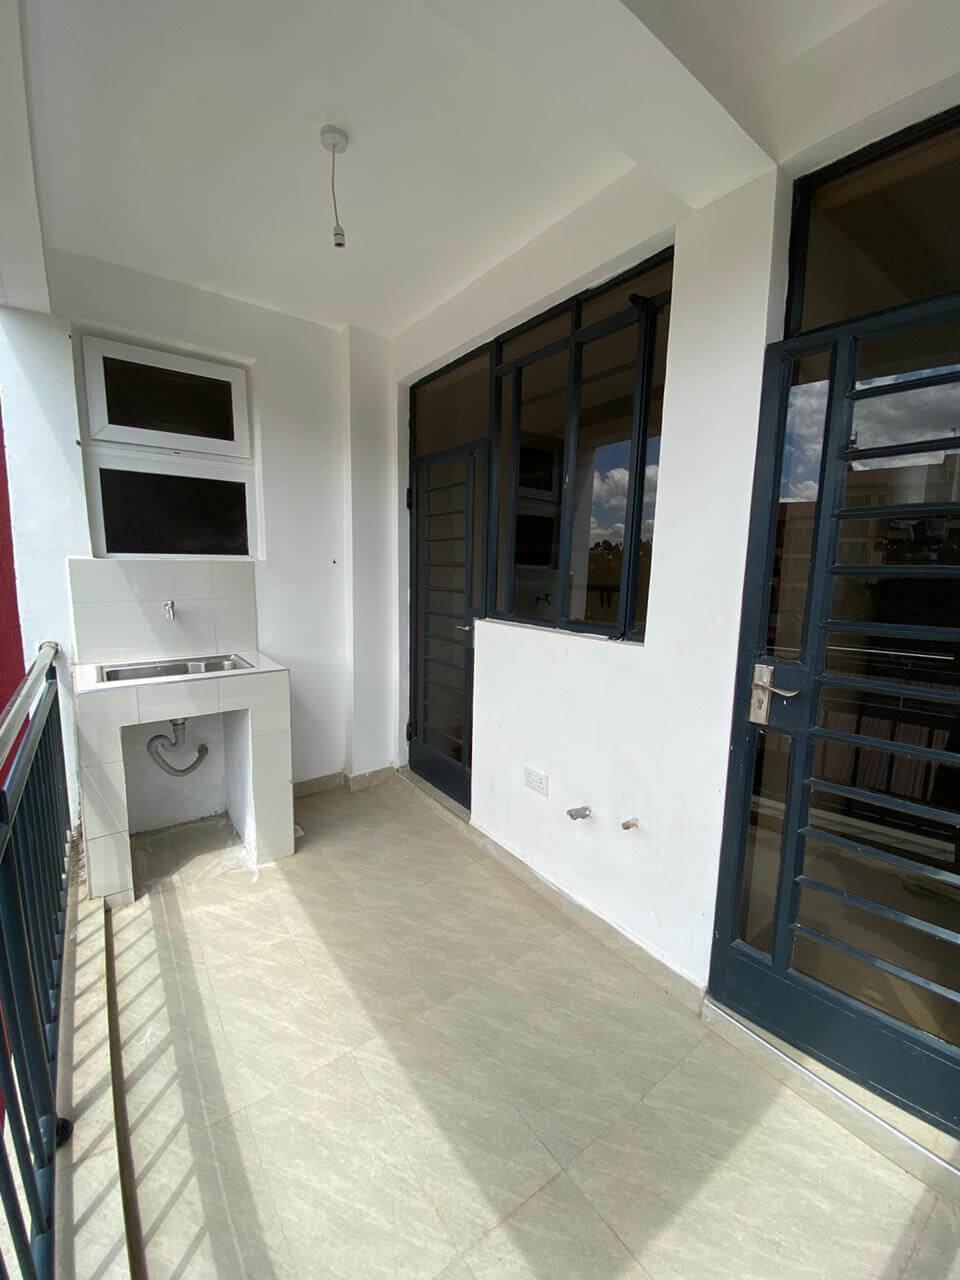 grandville luxury apartments phase 2 SQ room entrance from kitchen balcony